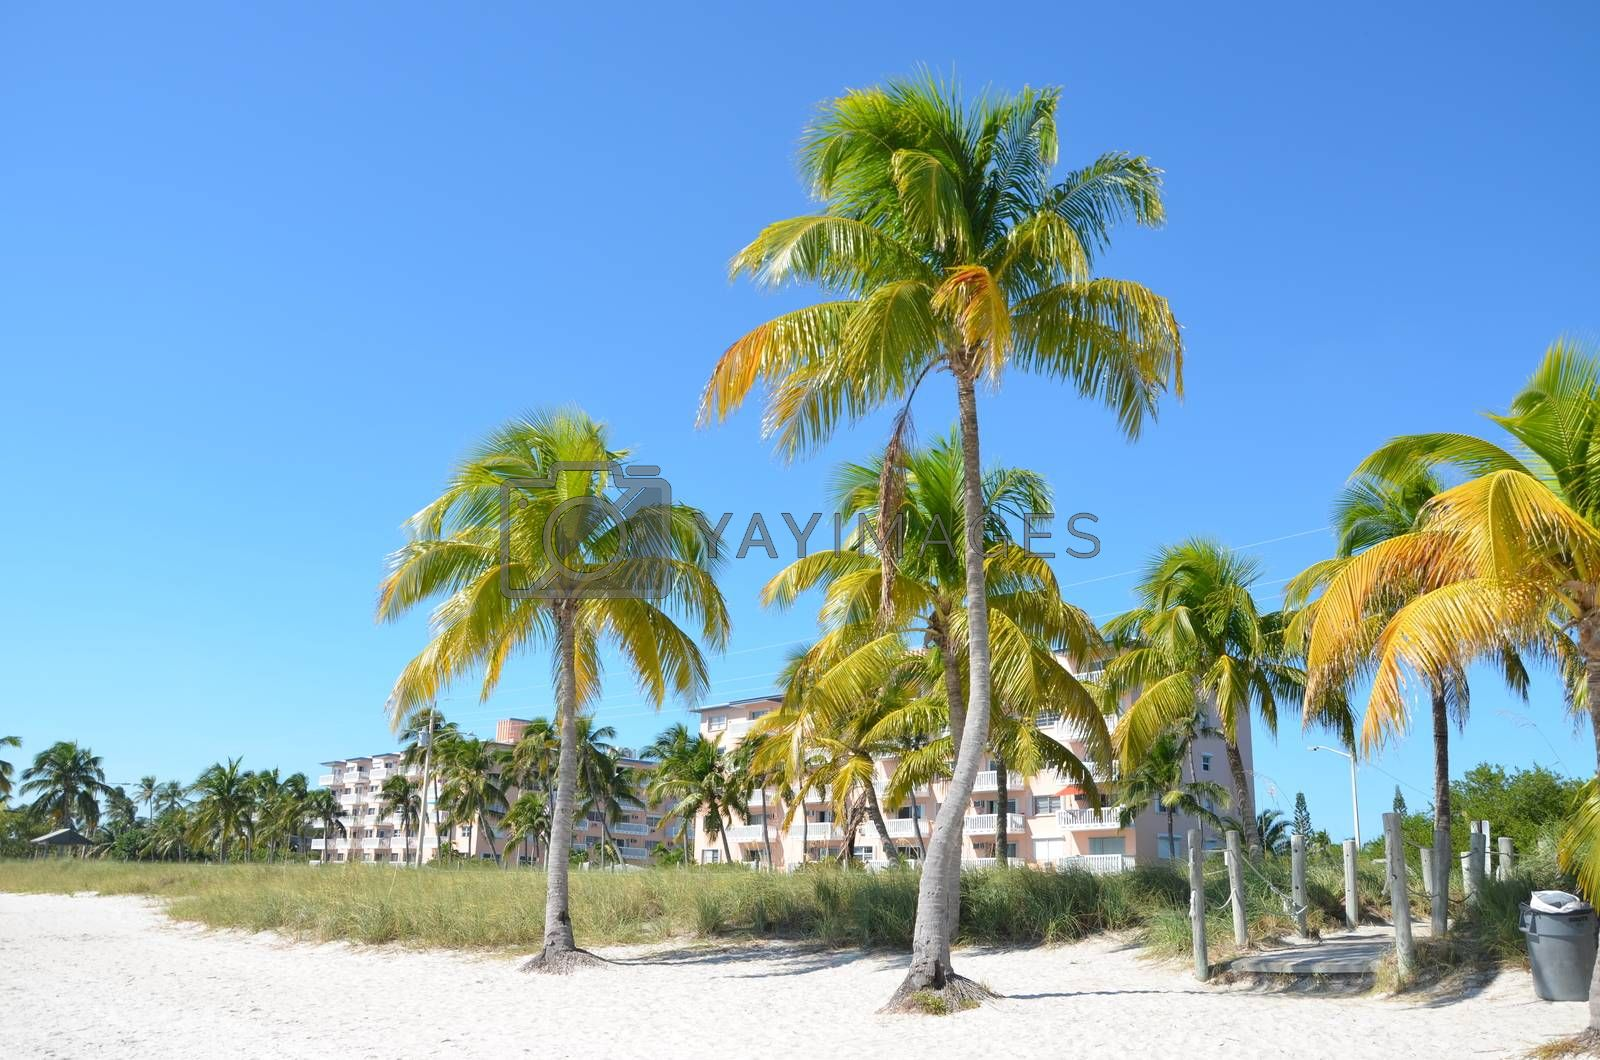 Palm trees on the coast in Key West Florida